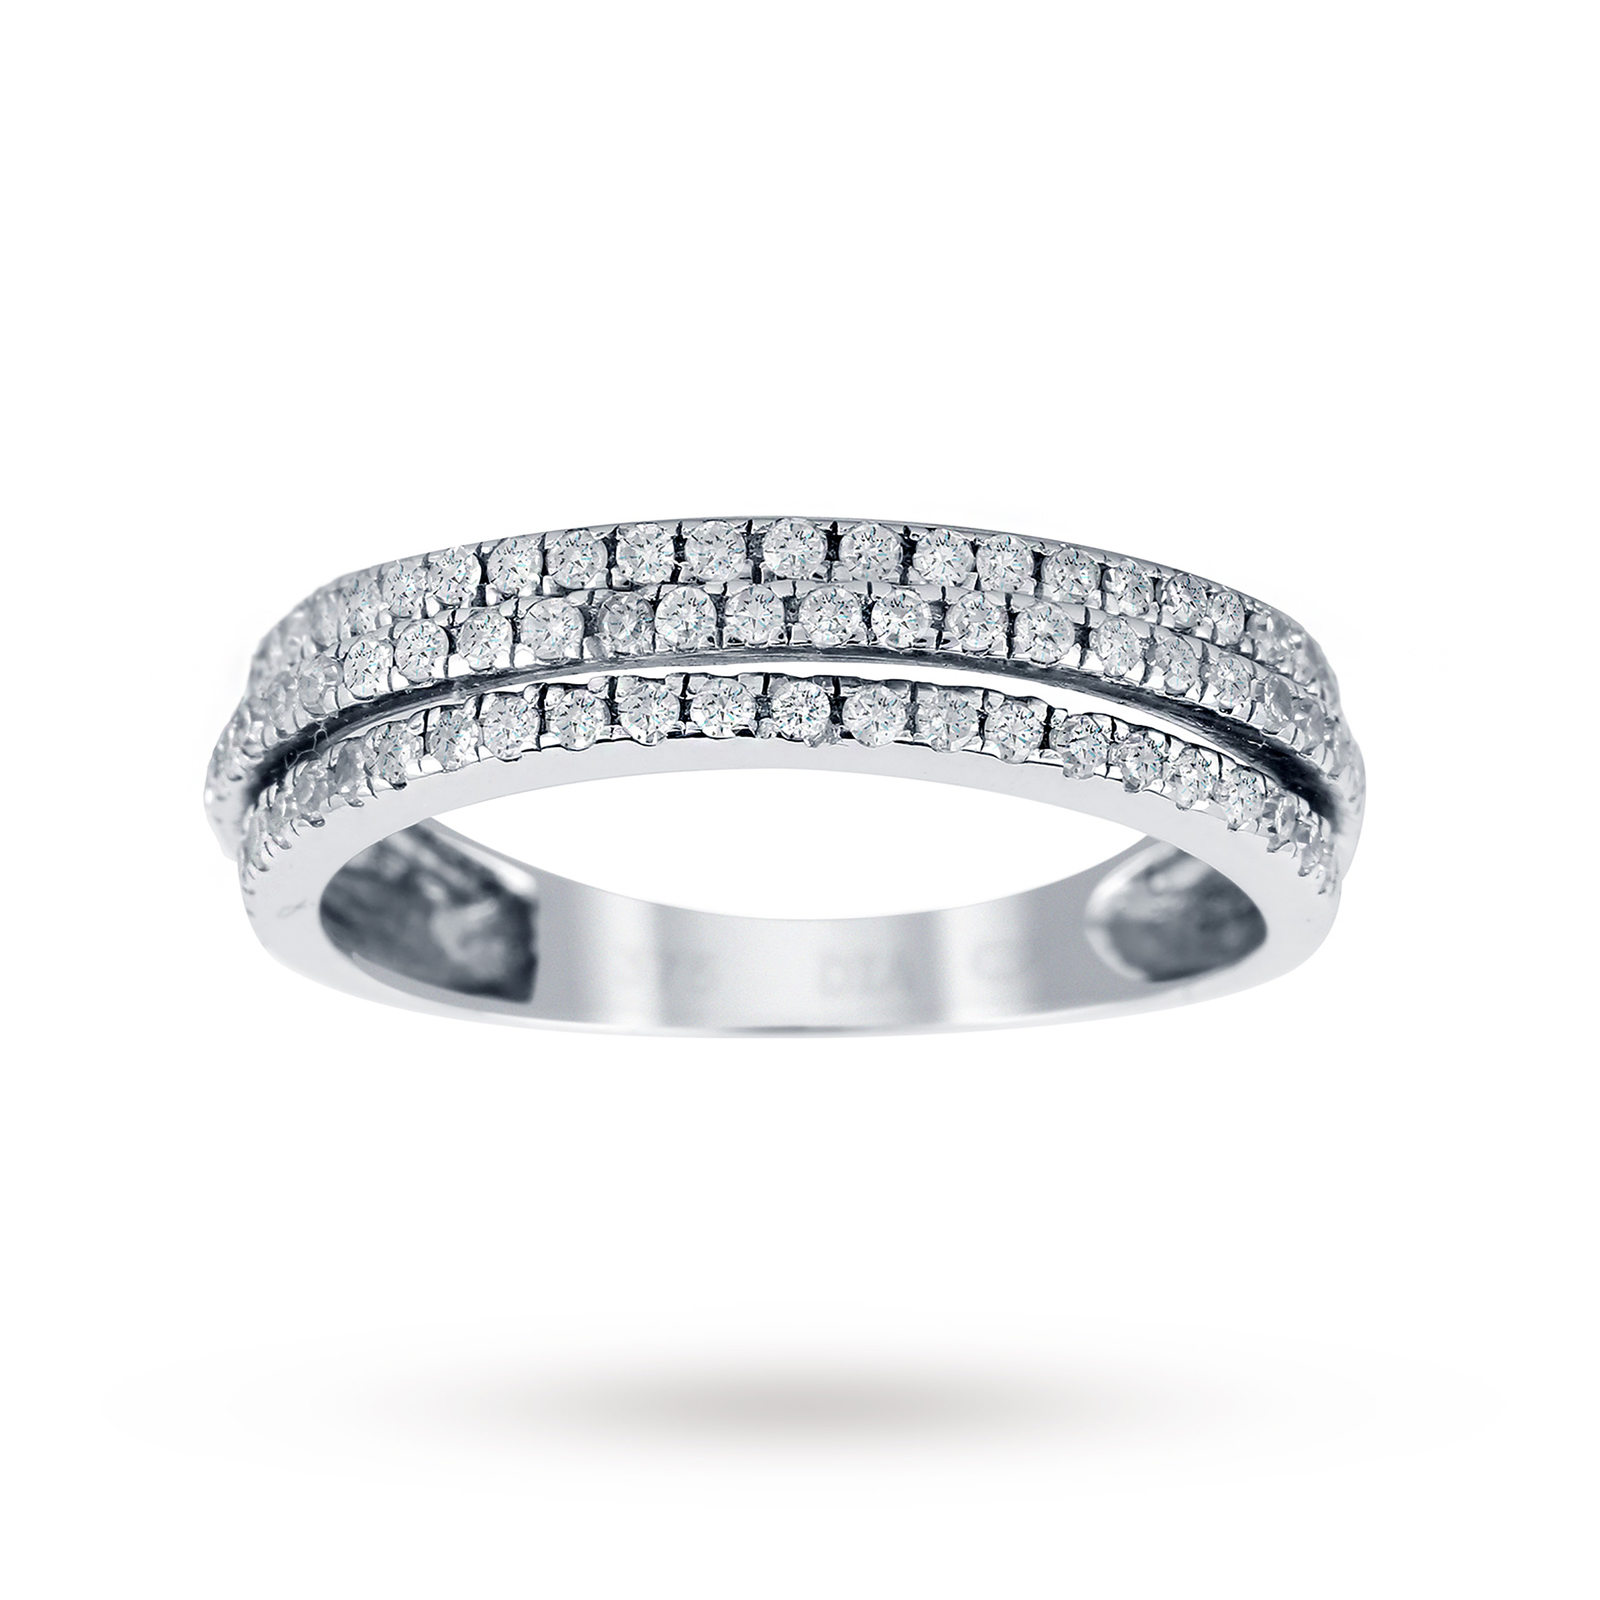 9ct White Gold 0.35cttw Round Brilliant Cut Diamond 3 Row Half Eternity Ring